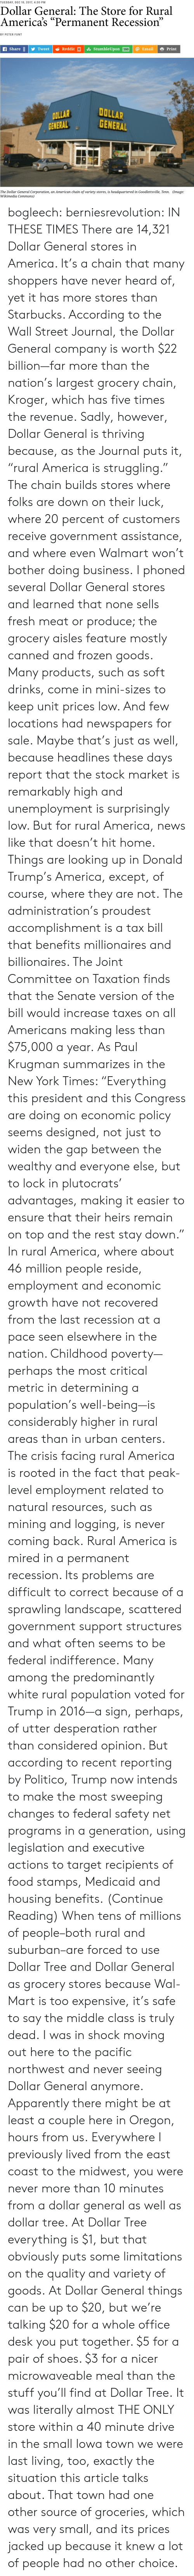 """America, Apparently, and Donald Trump: TUESDAY, DEC 19, 2017, 4:30 PM  Dollar General: The Store for Rural  America's """"Permanent Recession""""  BY PETER FUNT  Share У Tweet Reddit Ju StumbleUpon  @ Email  Print  OLLAR  GENERAL  DOLLAR  GENERAL  The Dollar General Corporation, an American chain of variety stores, is headquartered in Goodlettsville, Tenn.  (Image: bogleech:  berniesrevolution:  IN THESE TIMES There are 14,321 Dollar General stores in America. It's a chain that many shoppers have never heard of, yet it has more stores than Starbucks. According to the Wall Street Journal, the Dollar General company is worth $22 billion—far more than the nation's largest grocery chain, Kroger, which has five times the revenue. Sadly, however, Dollar General is thriving because, as the Journal puts it, """"rural America is struggling."""" The chain builds stores where folks are down on their luck, where 20 percent of customers receive government assistance, and where even Walmart won't bother doing business. I phoned several Dollar General stores and learned that none sells fresh meat or produce; the grocery aisles feature mostly canned and frozen goods. Many products, such as soft drinks, come in mini-sizes to keep unit prices low. And few locations had newspapers for sale. Maybe that's just as well, because headlines these days report that the stock market is remarkably high and unemployment is surprisingly low. But for rural America, news like that doesn't hit home. Things are looking up in Donald Trump's America, except, of course, where they are not. The administration's proudest accomplishment is a tax bill that benefits millionaires and billionaires. The Joint Committee on Taxation finds that the Senate version of the bill would increase taxes on all Americans making less than $75,000 a year. As Paul Krugman summarizes in the New York Times: """"Everything this president and this Congress are doing on economic policy seems designed, not just to widen the gap between the wealth"""